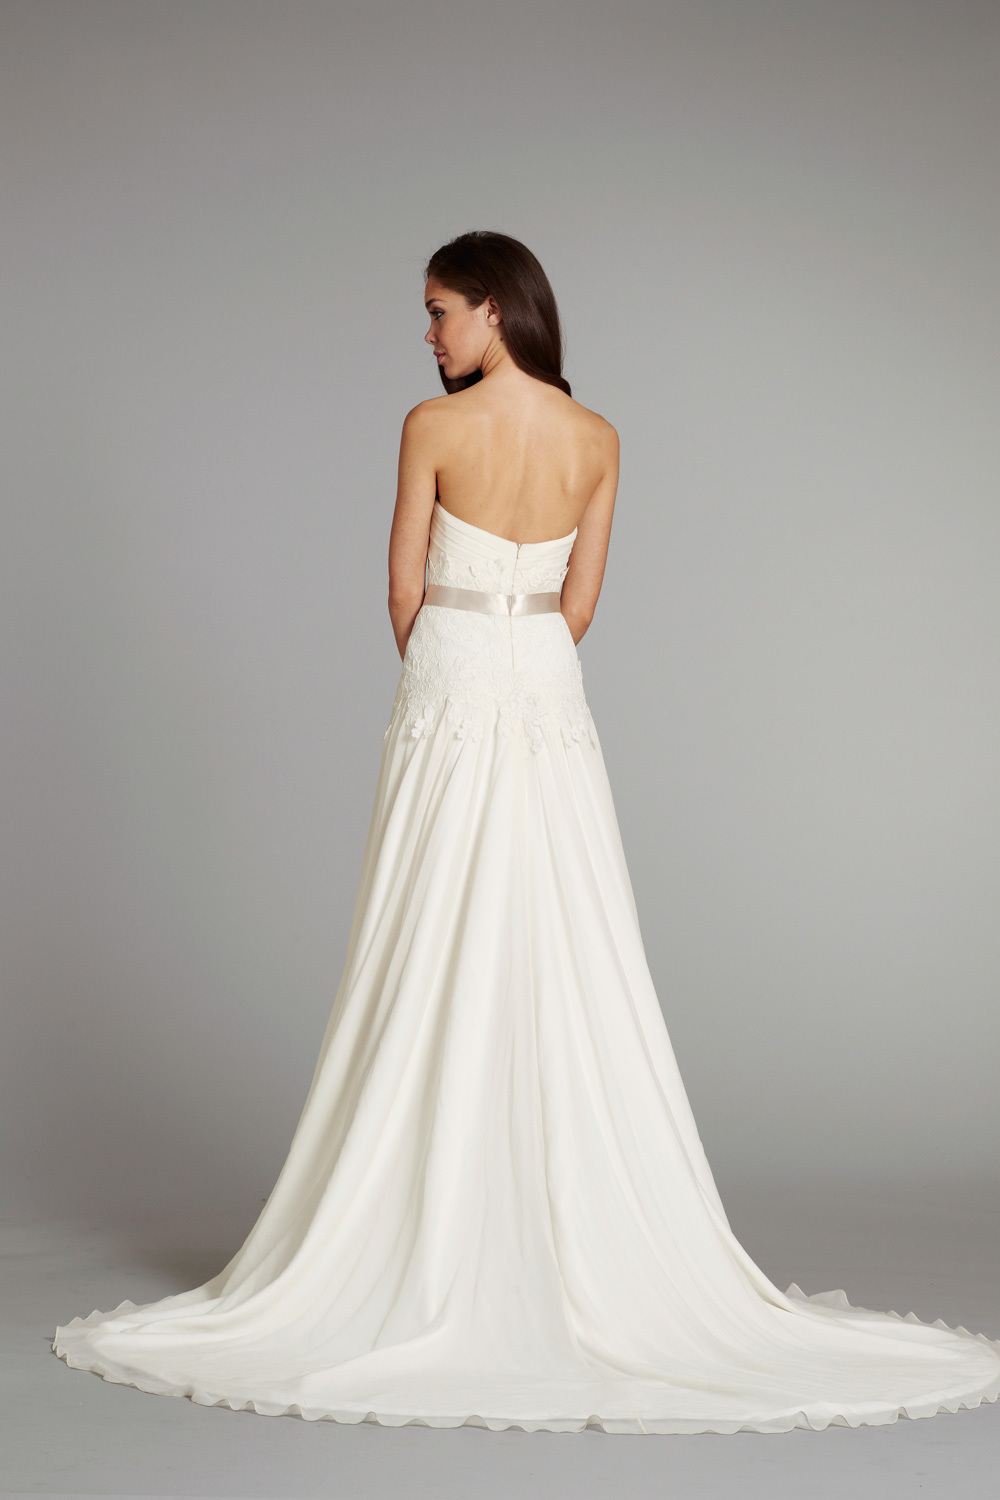 Bridal-gown-wedding-dress-jlm-hayley-paige-fall-2012-tuula-back.full